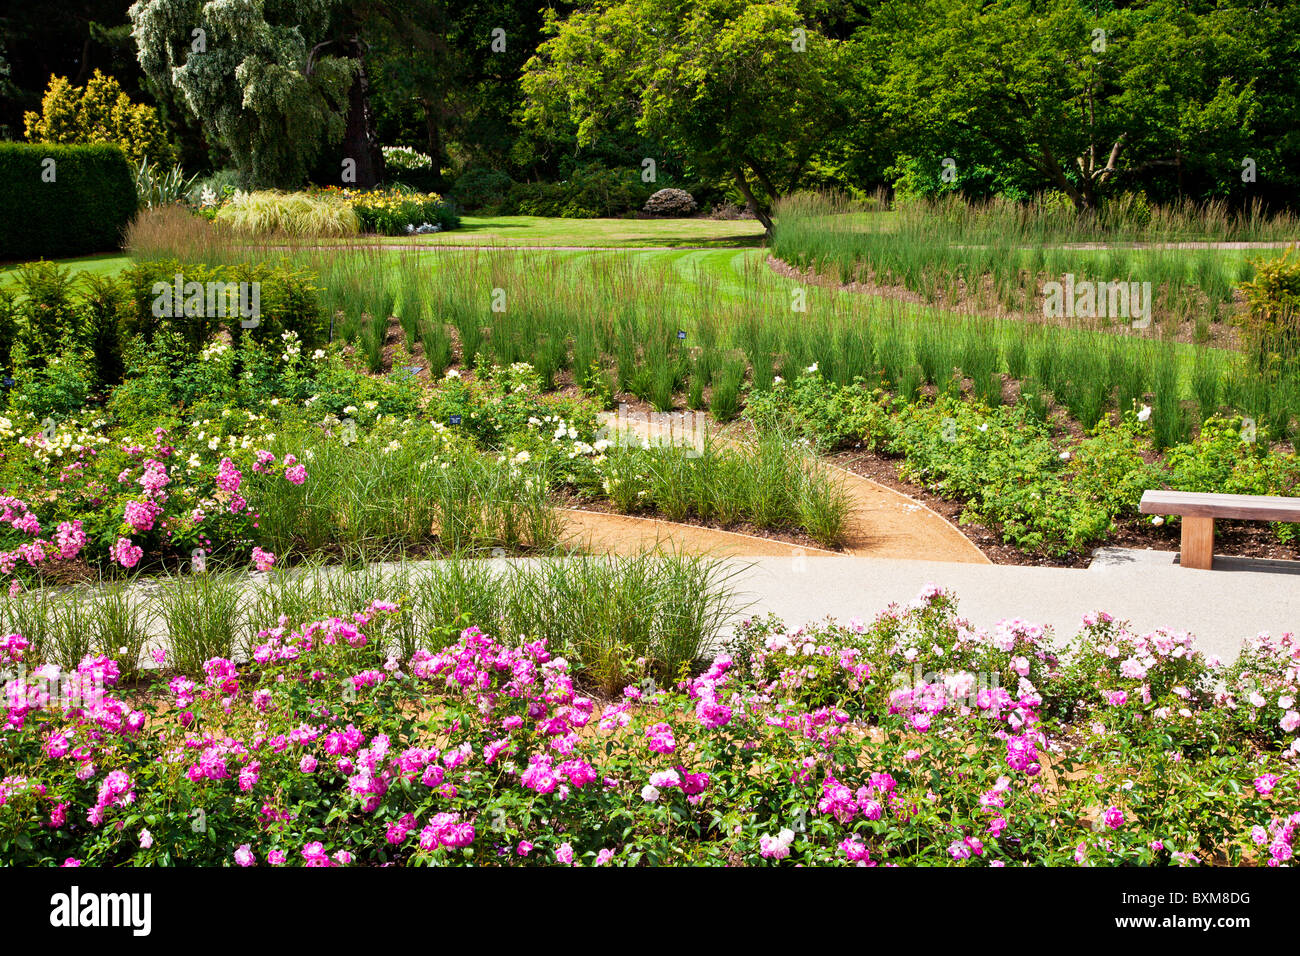 The new Rose Garden,opened in 2010, in the Savill Gardens, part of the Royal Landscape, near Windsor, England, UK - Stock Image